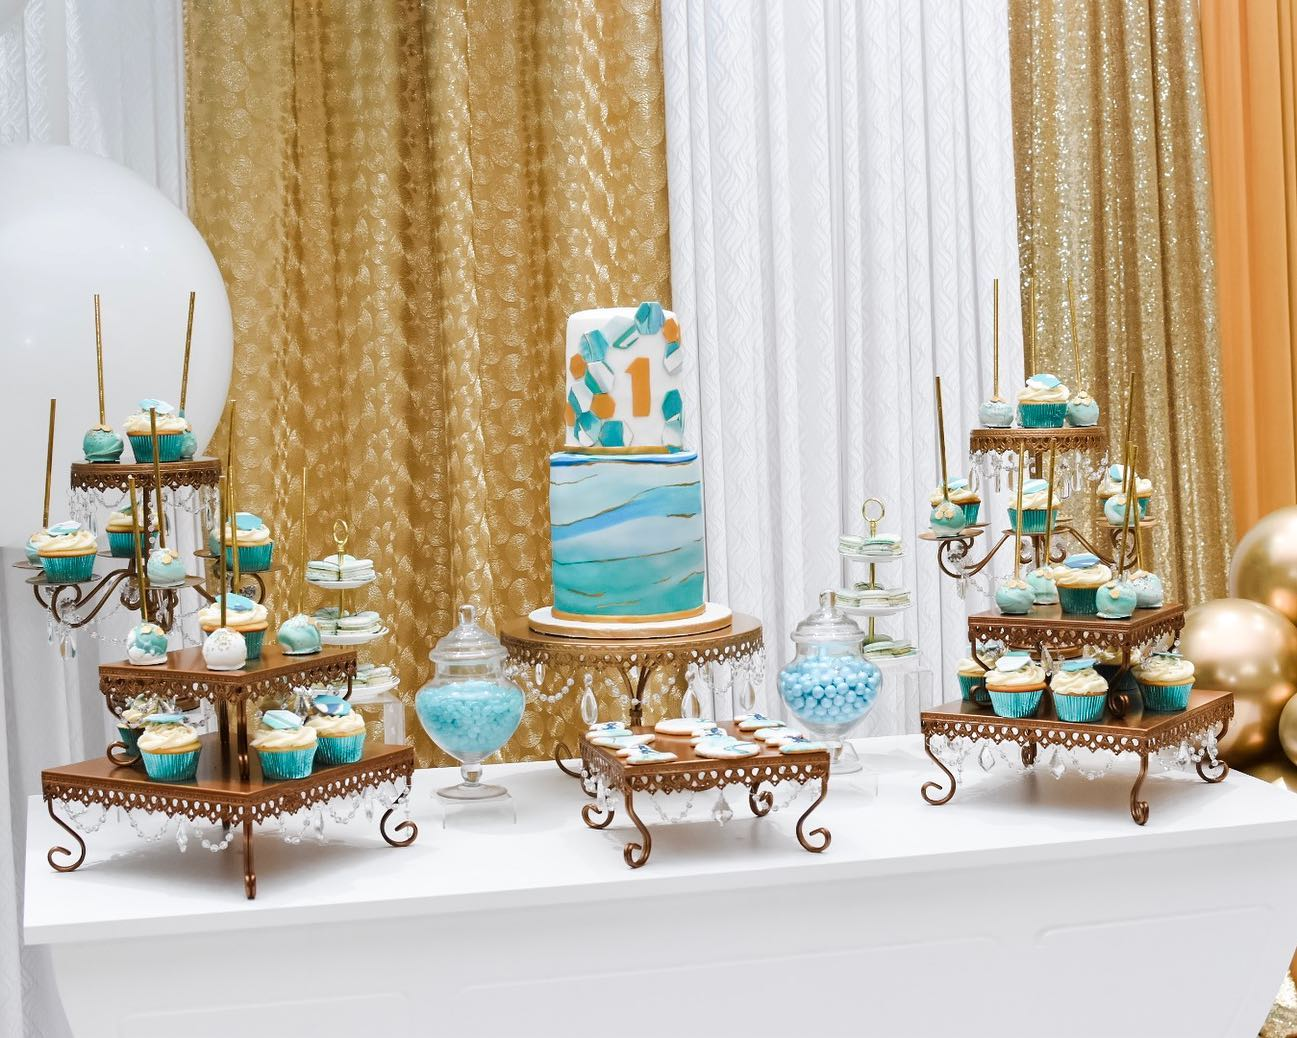 Simply Cakes - Full dessert table (decor by Elaborate Creations)